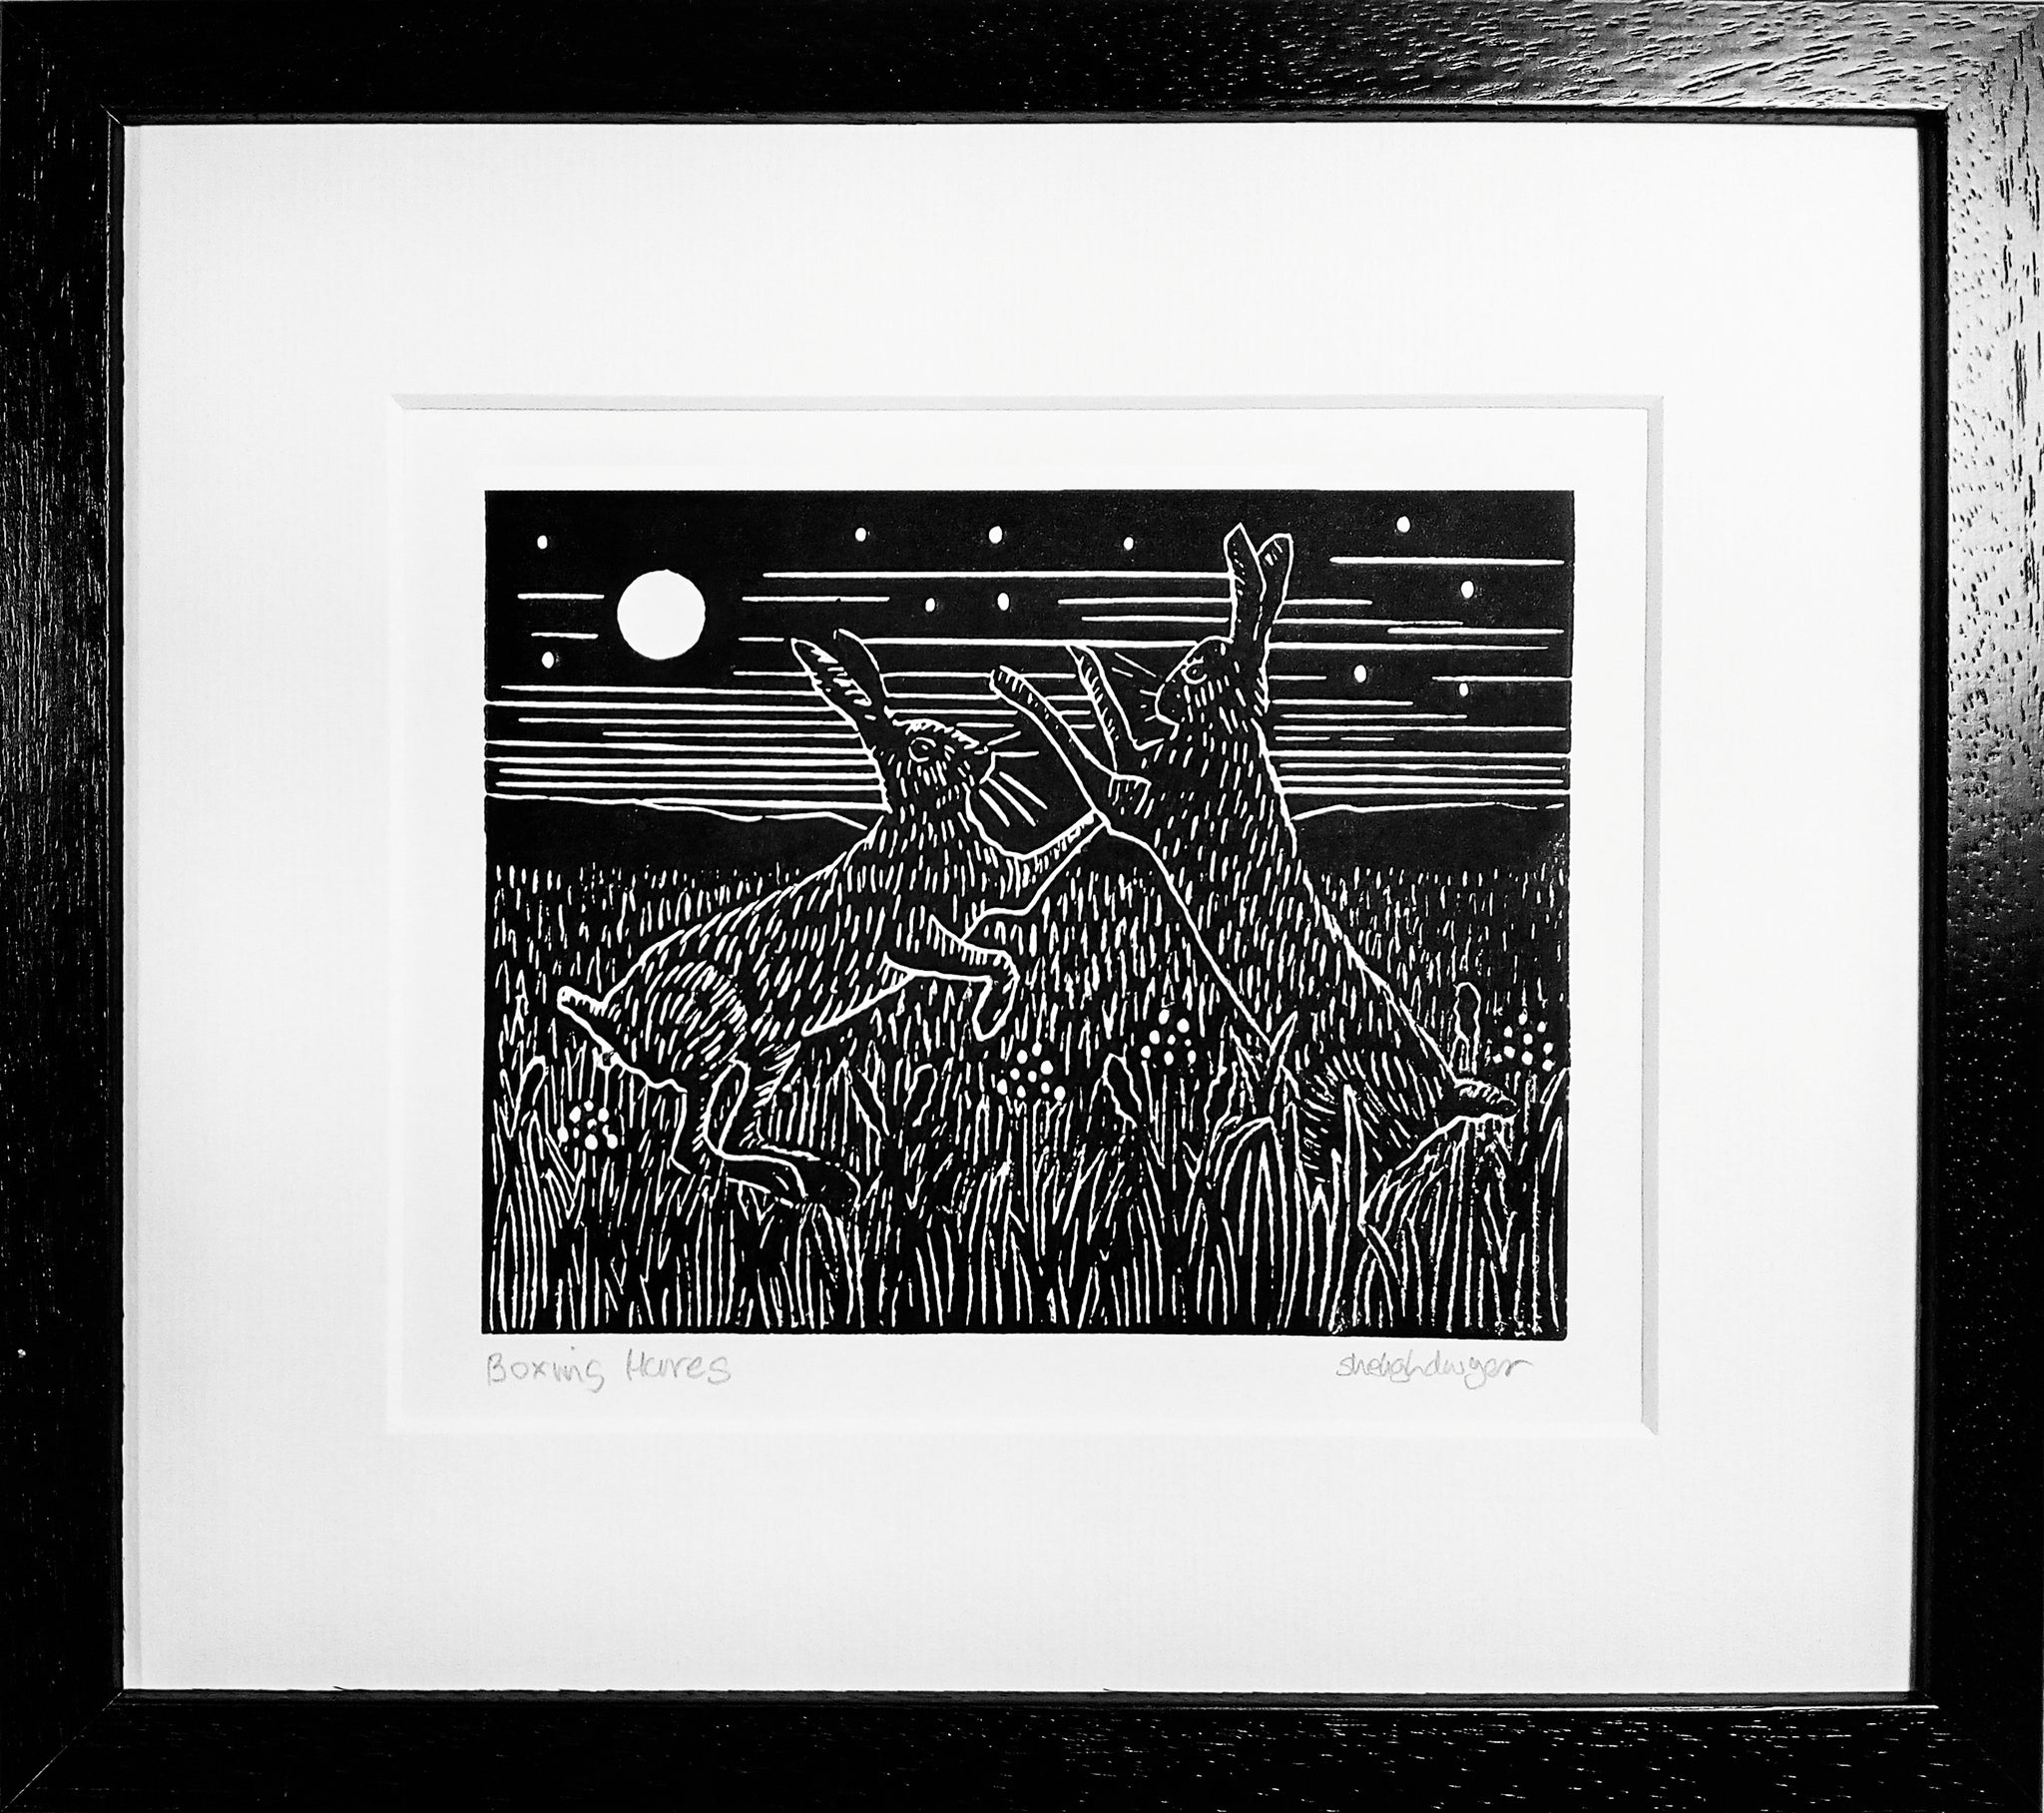 Framed Hand Printed Black and White Lino Print of Boxing Hares